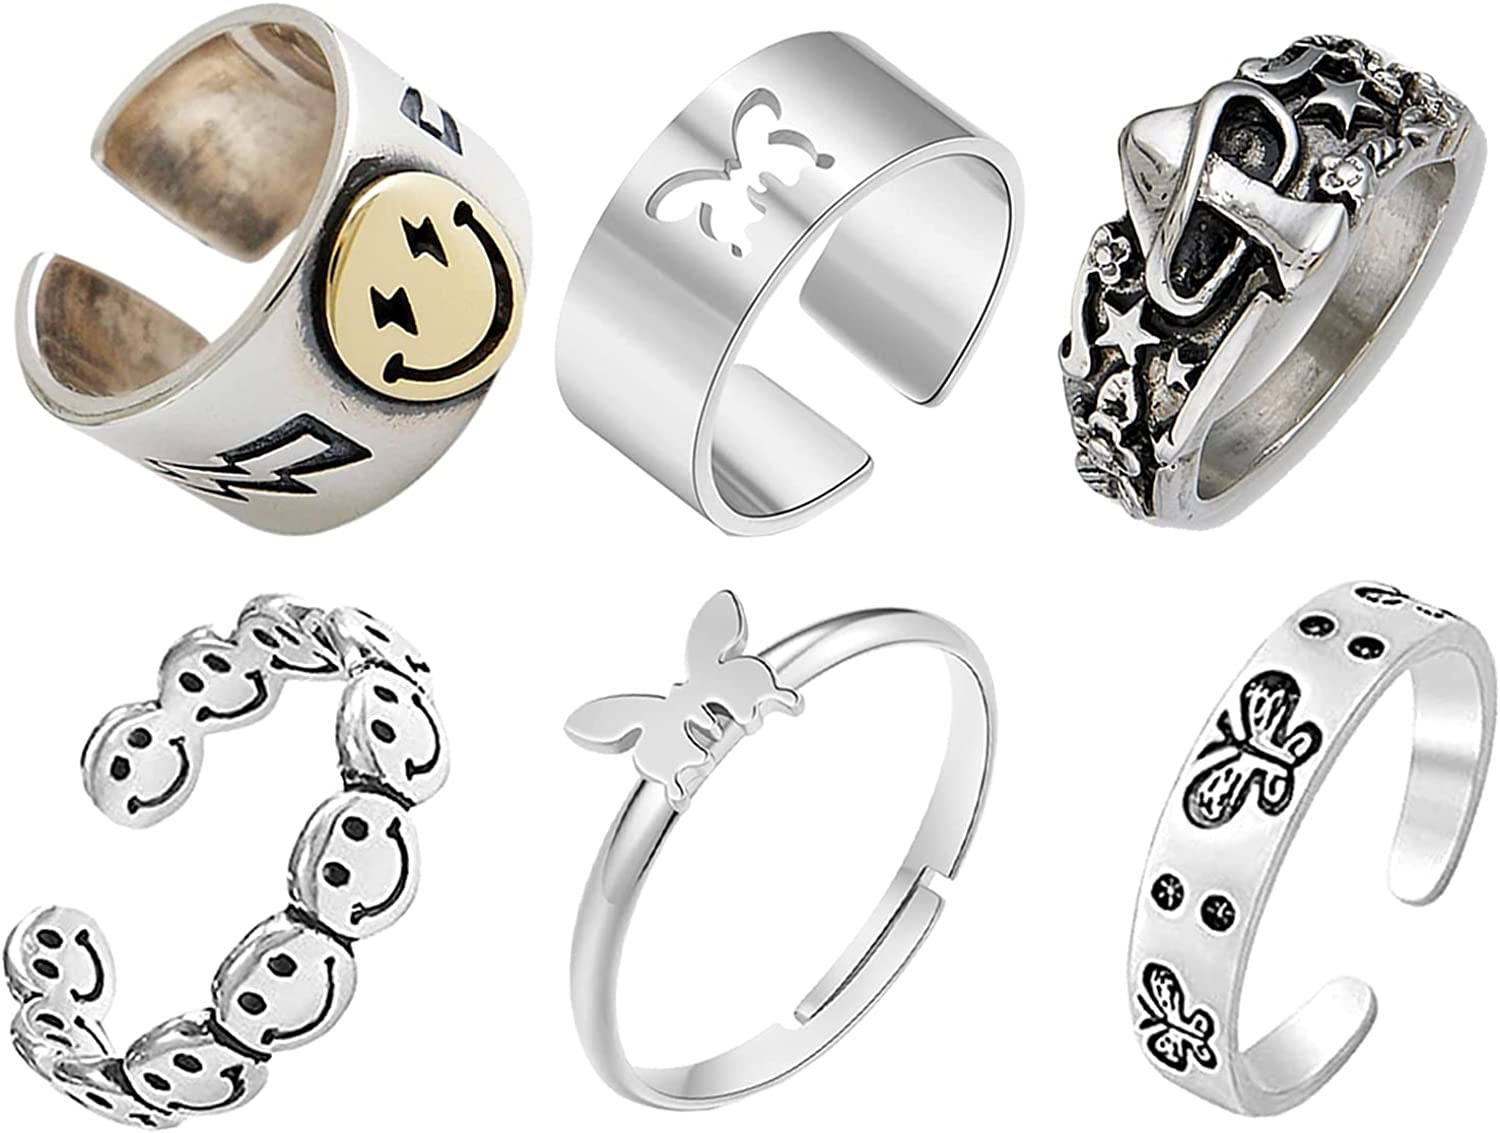 6pcs Smiley Face Ring Butterfly Rings Set Sad Face Ring Chunky Adjustable Butterfly Rings Pack for Women